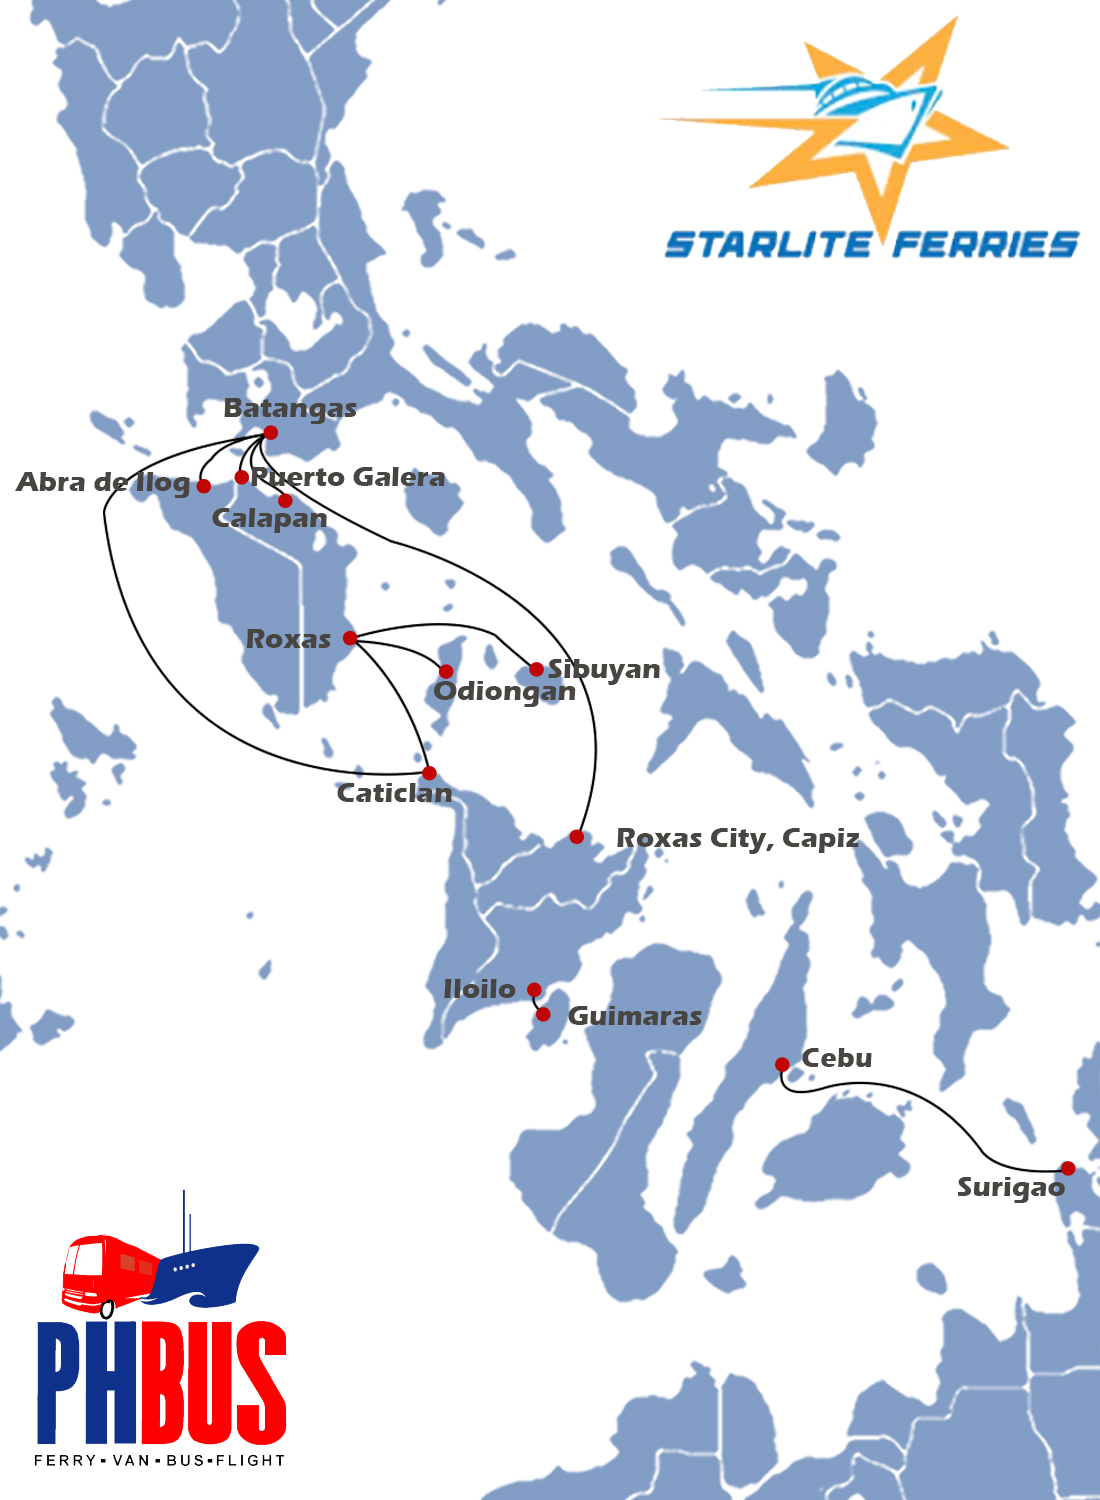 starlite-ferries-route-map-network-phbus.jpg